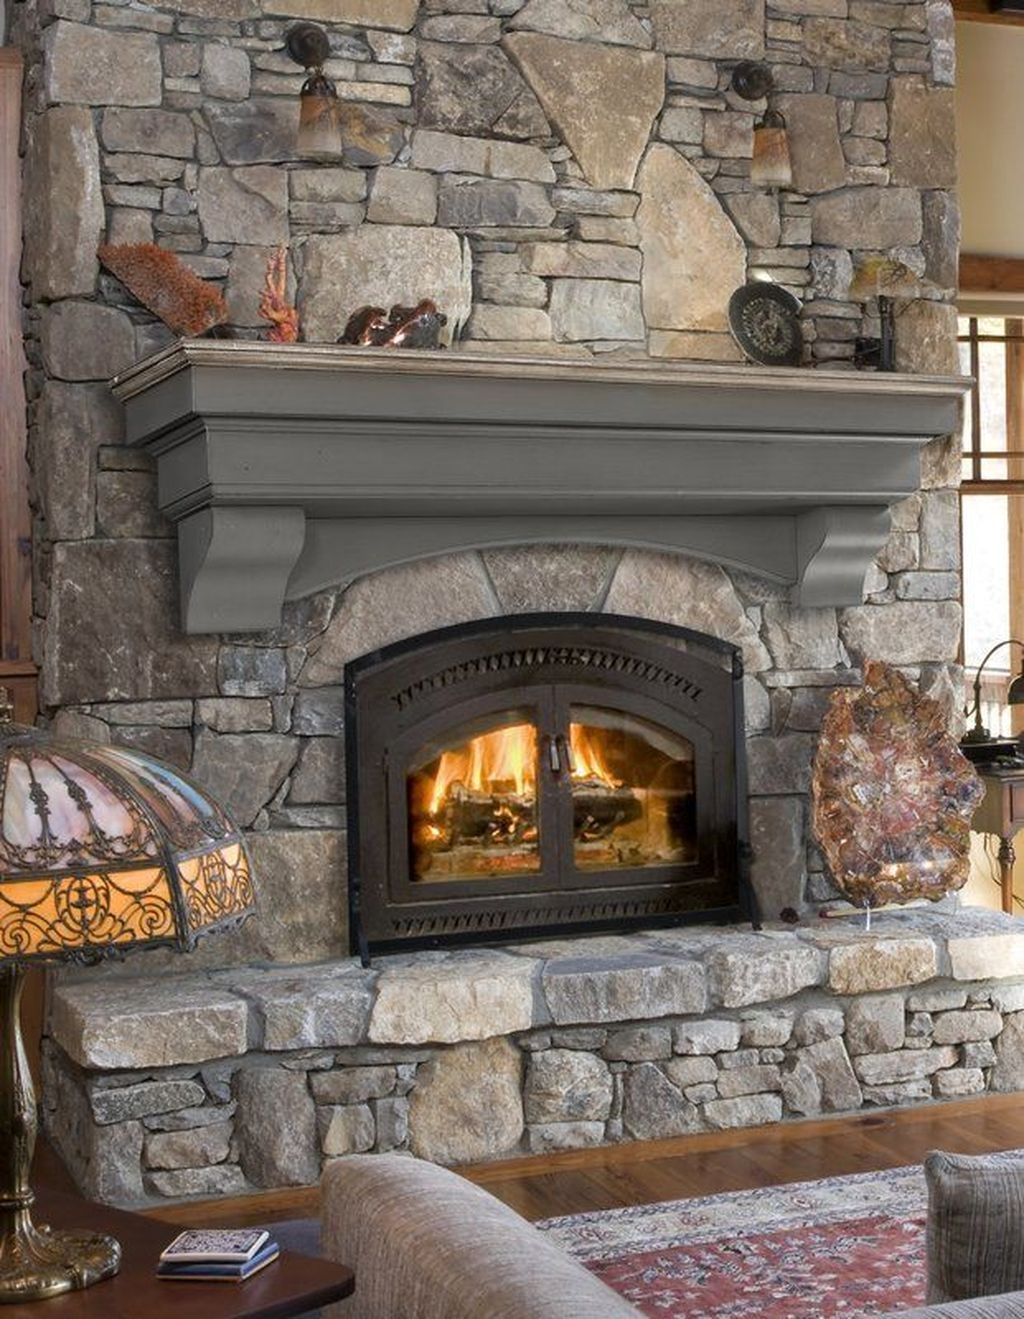 43 Genius Fireplace Makeover Design Ideas Fireplace shelves